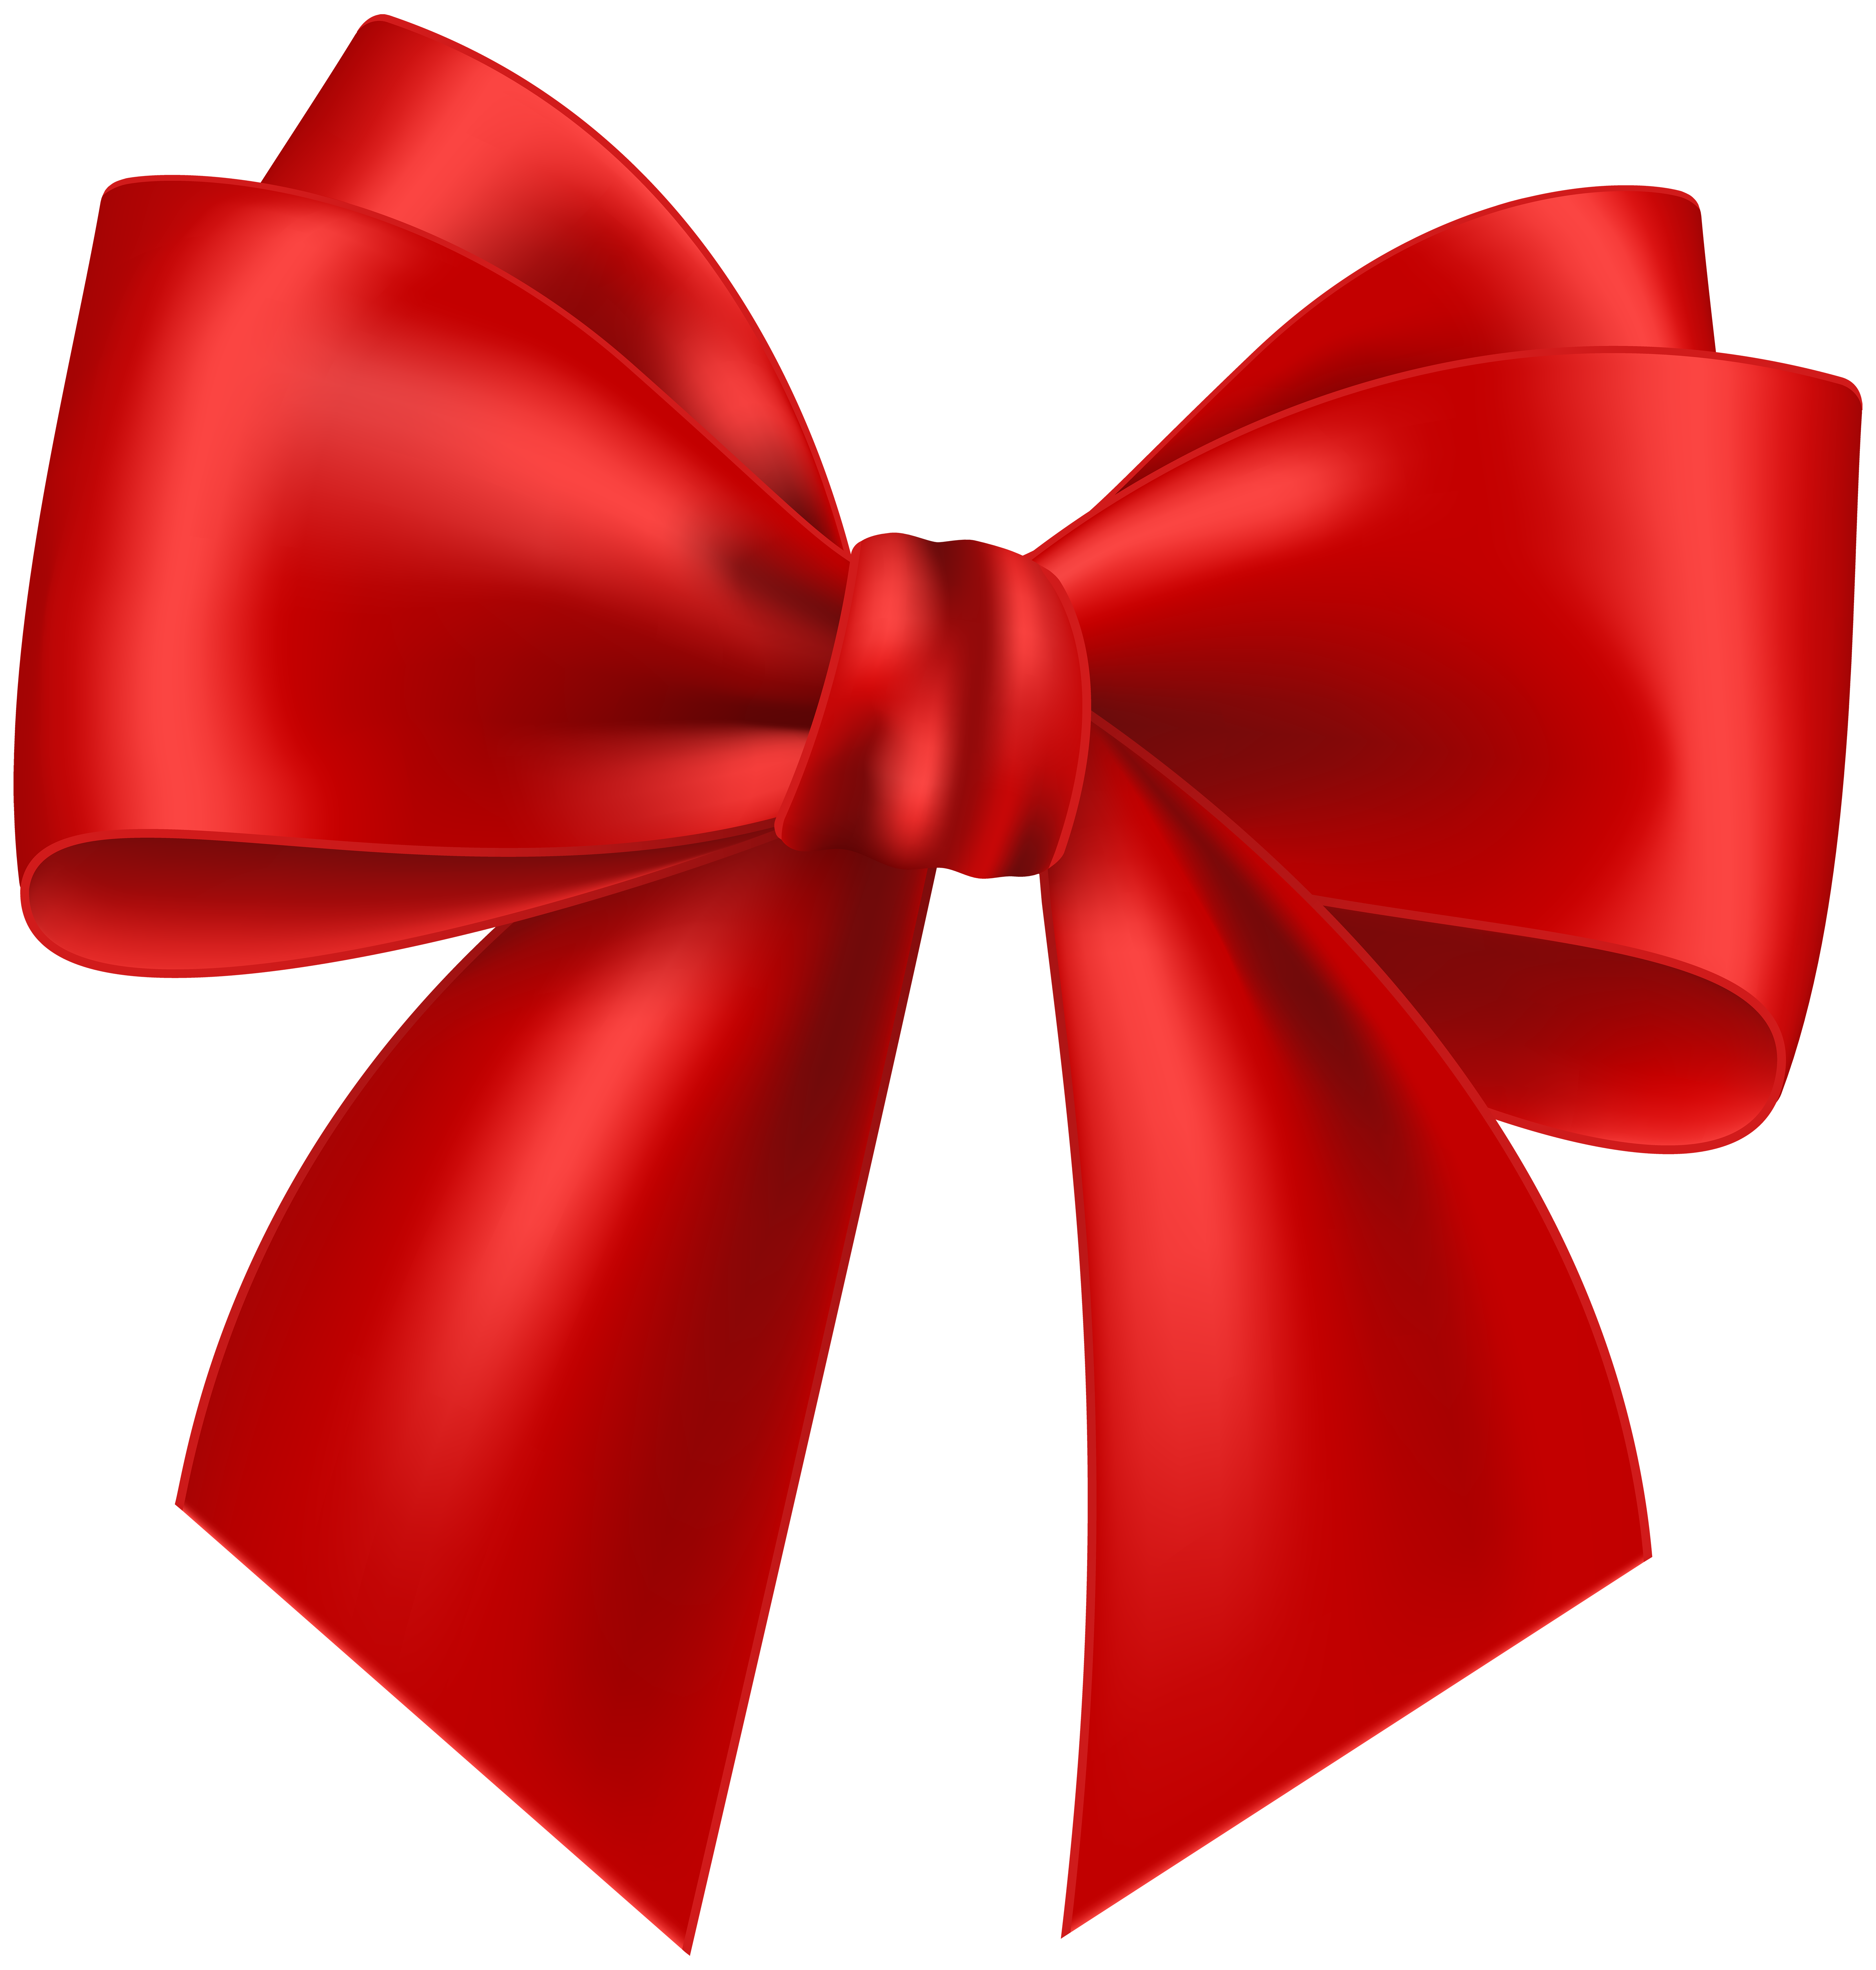 Transparent clip art image. Clipart bow red